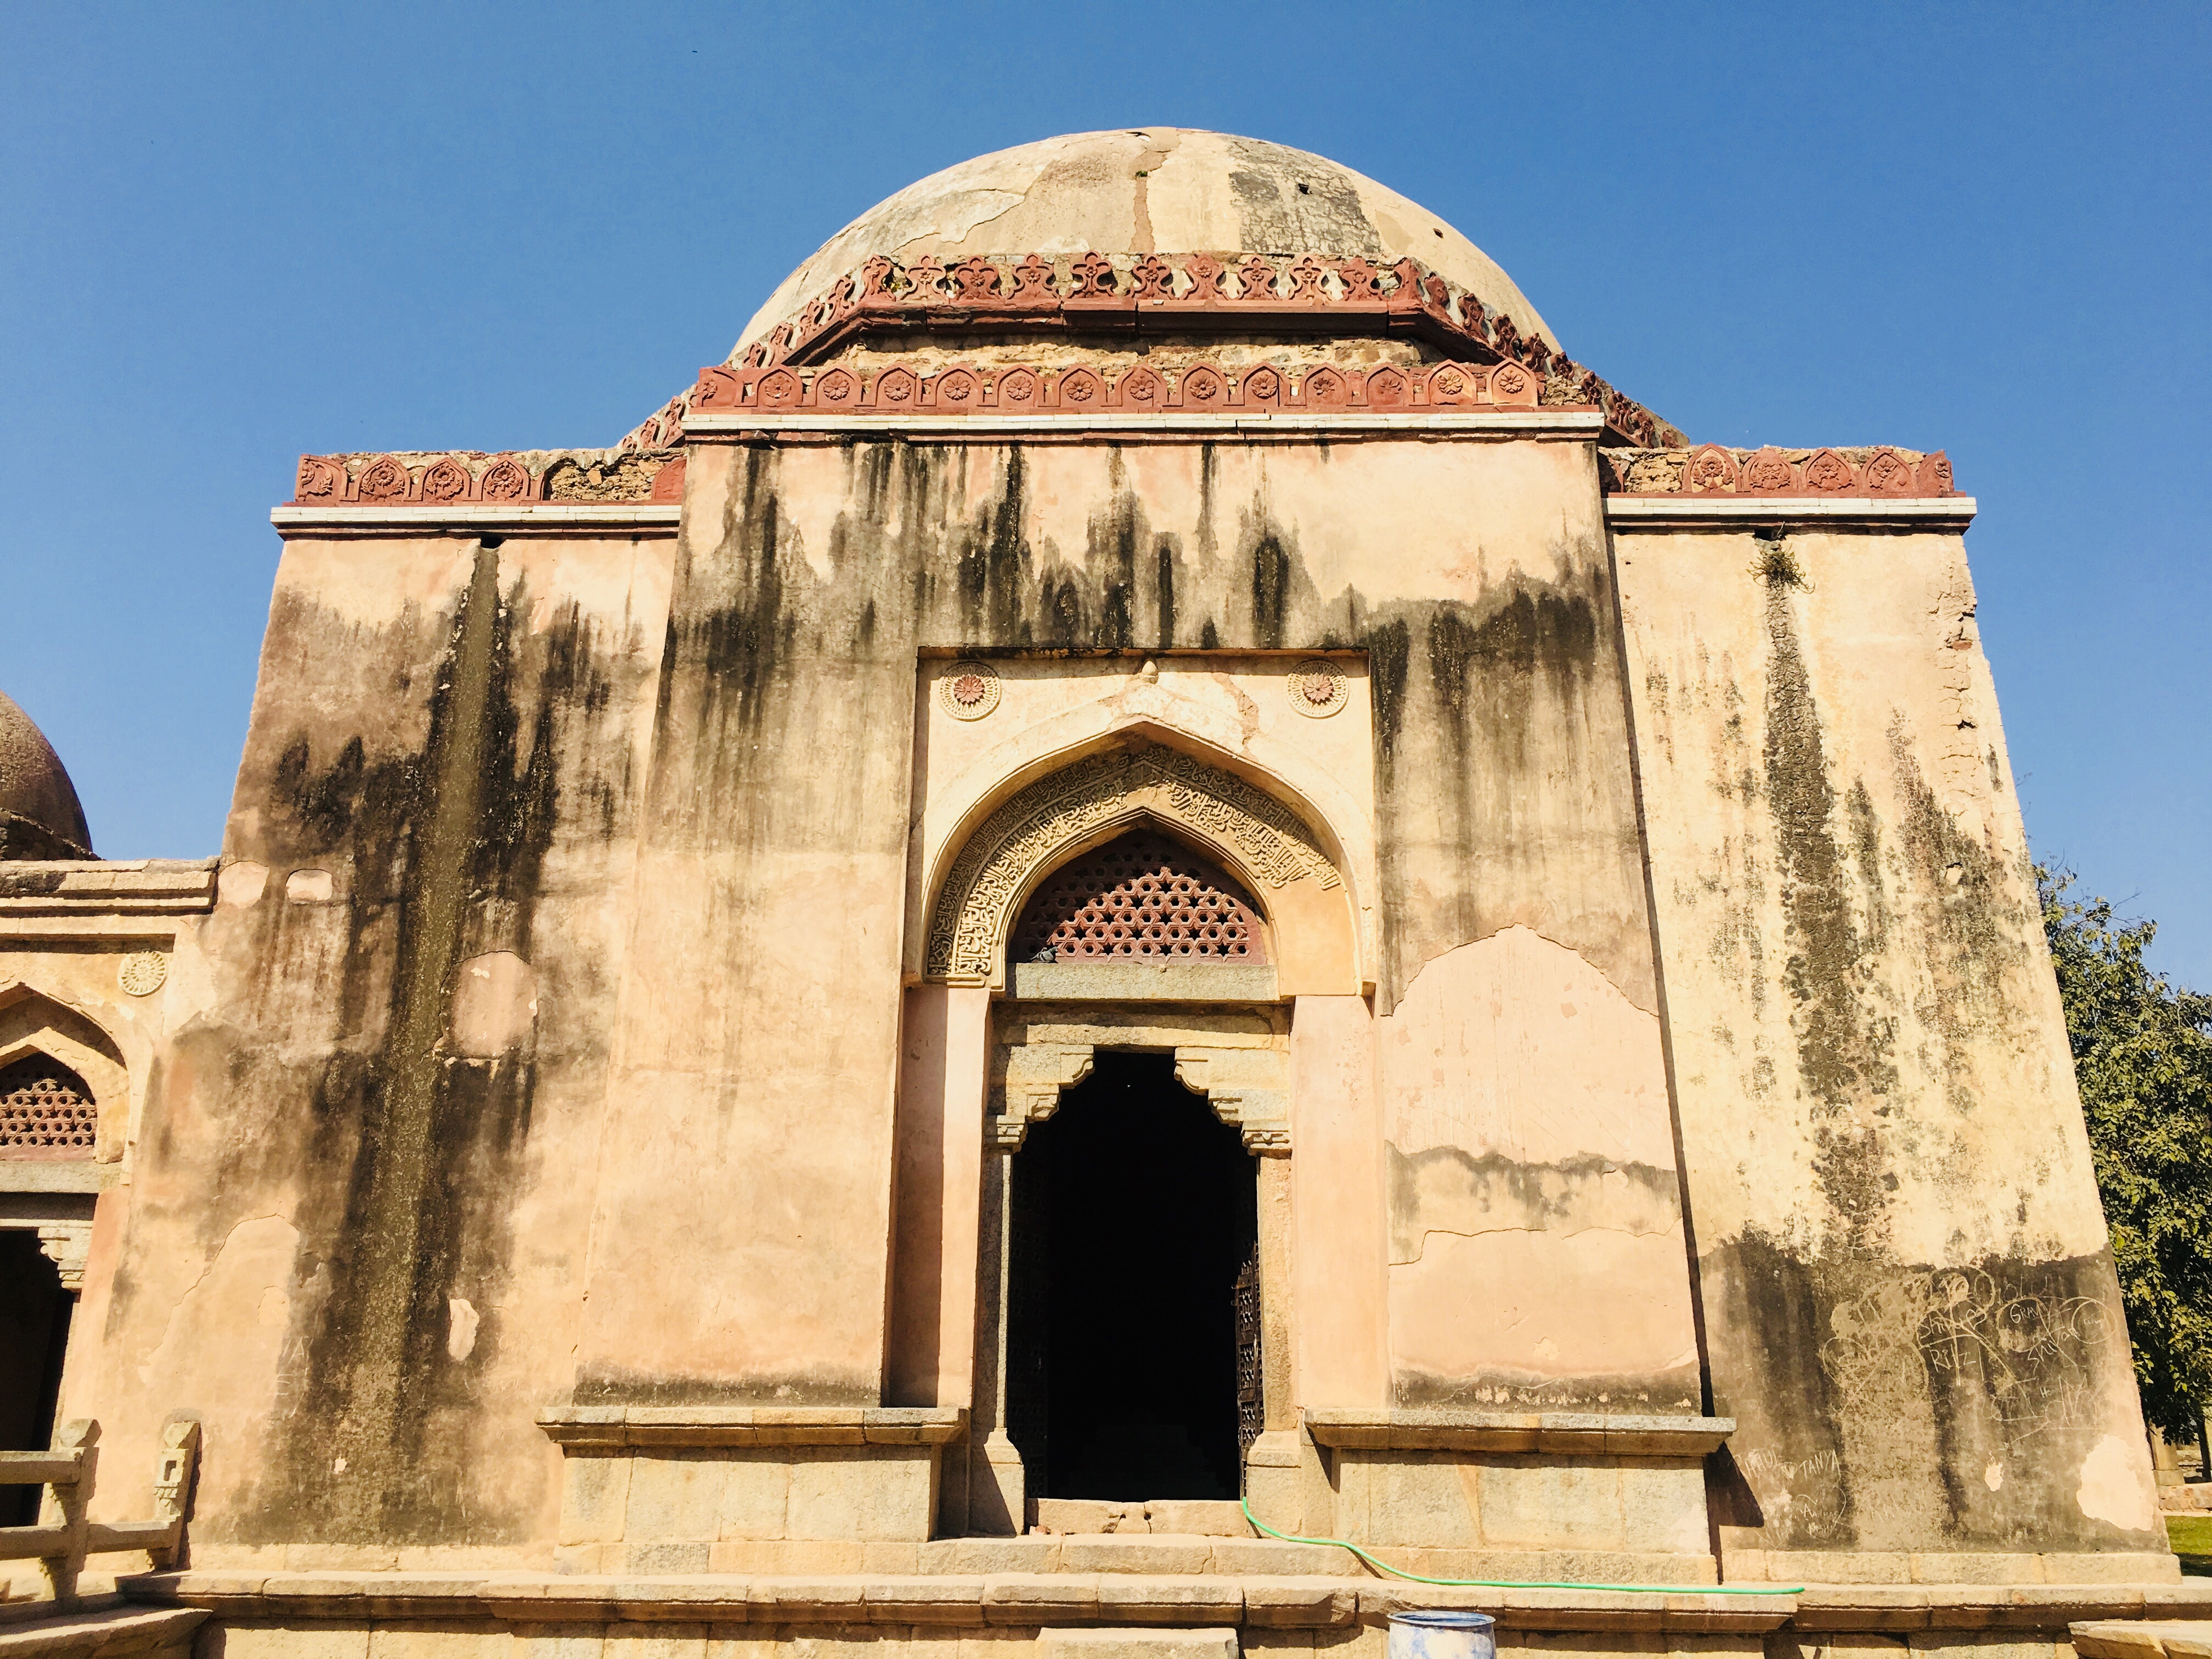 The Firoz Shah's Tomb at The Hauz Khas Fort